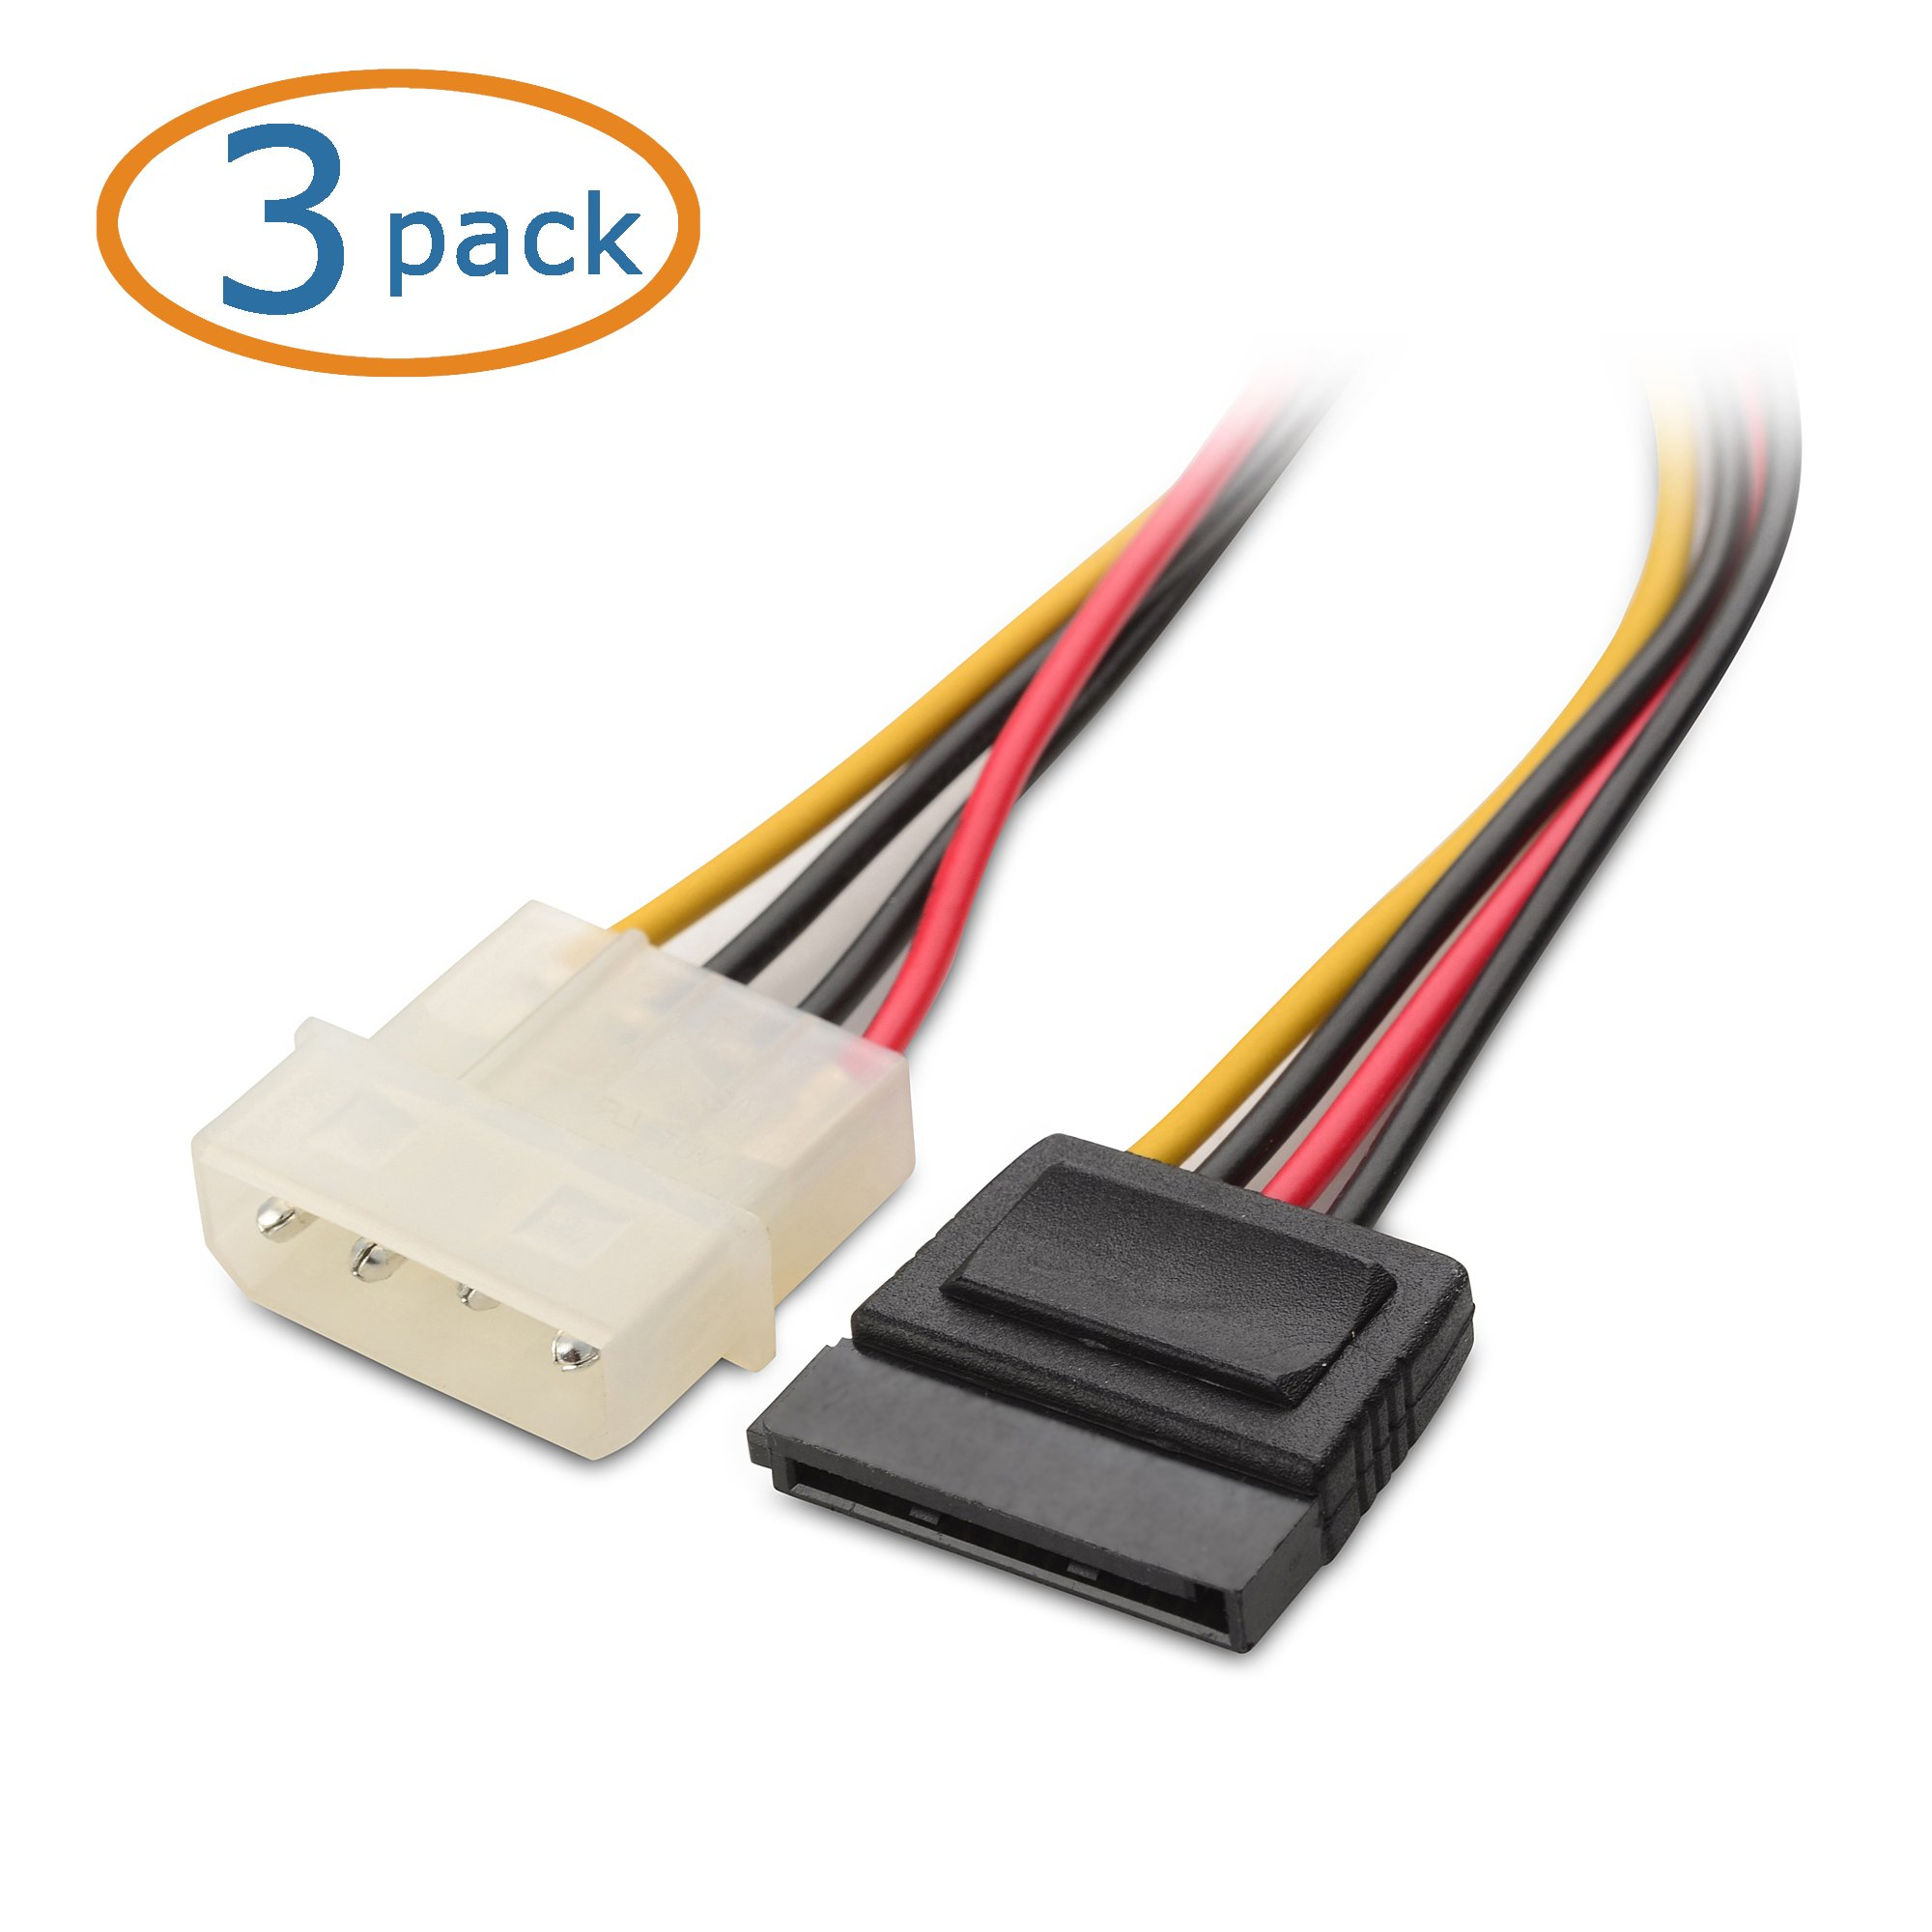 Types Of Sata Cables : Cable matters pack pin molex to sata power